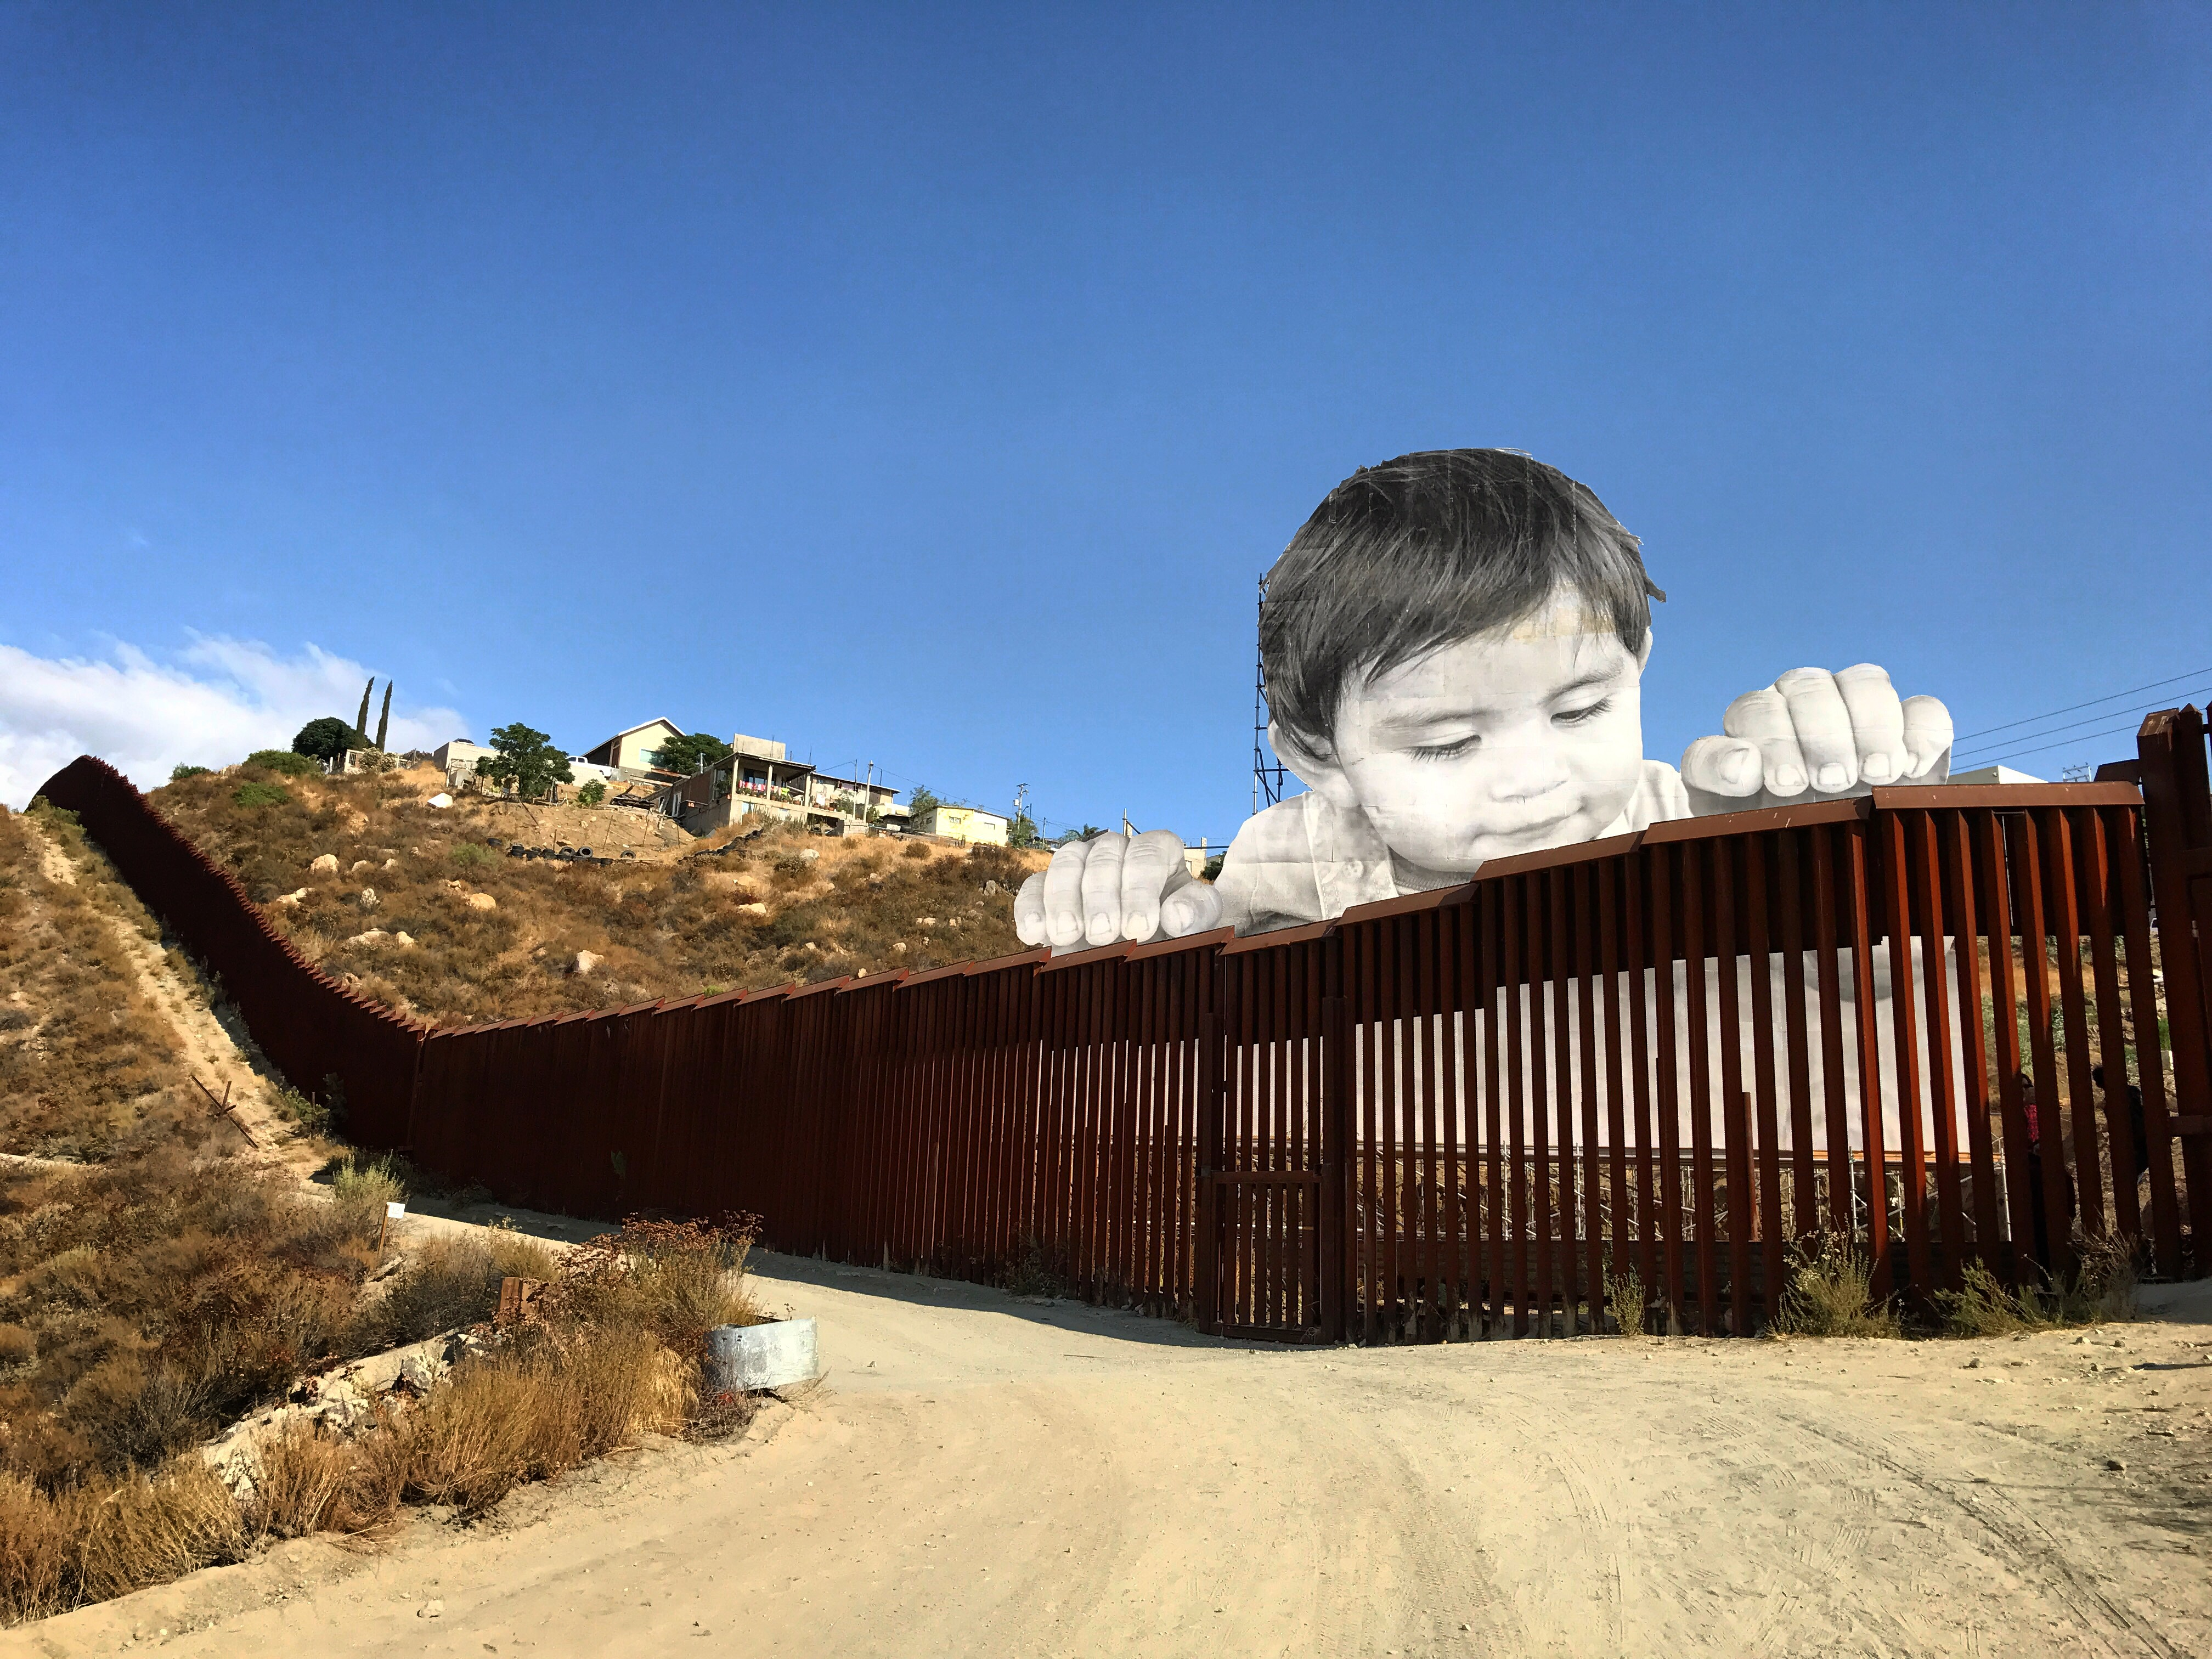 Long stretch of wall with large image of baby look over top